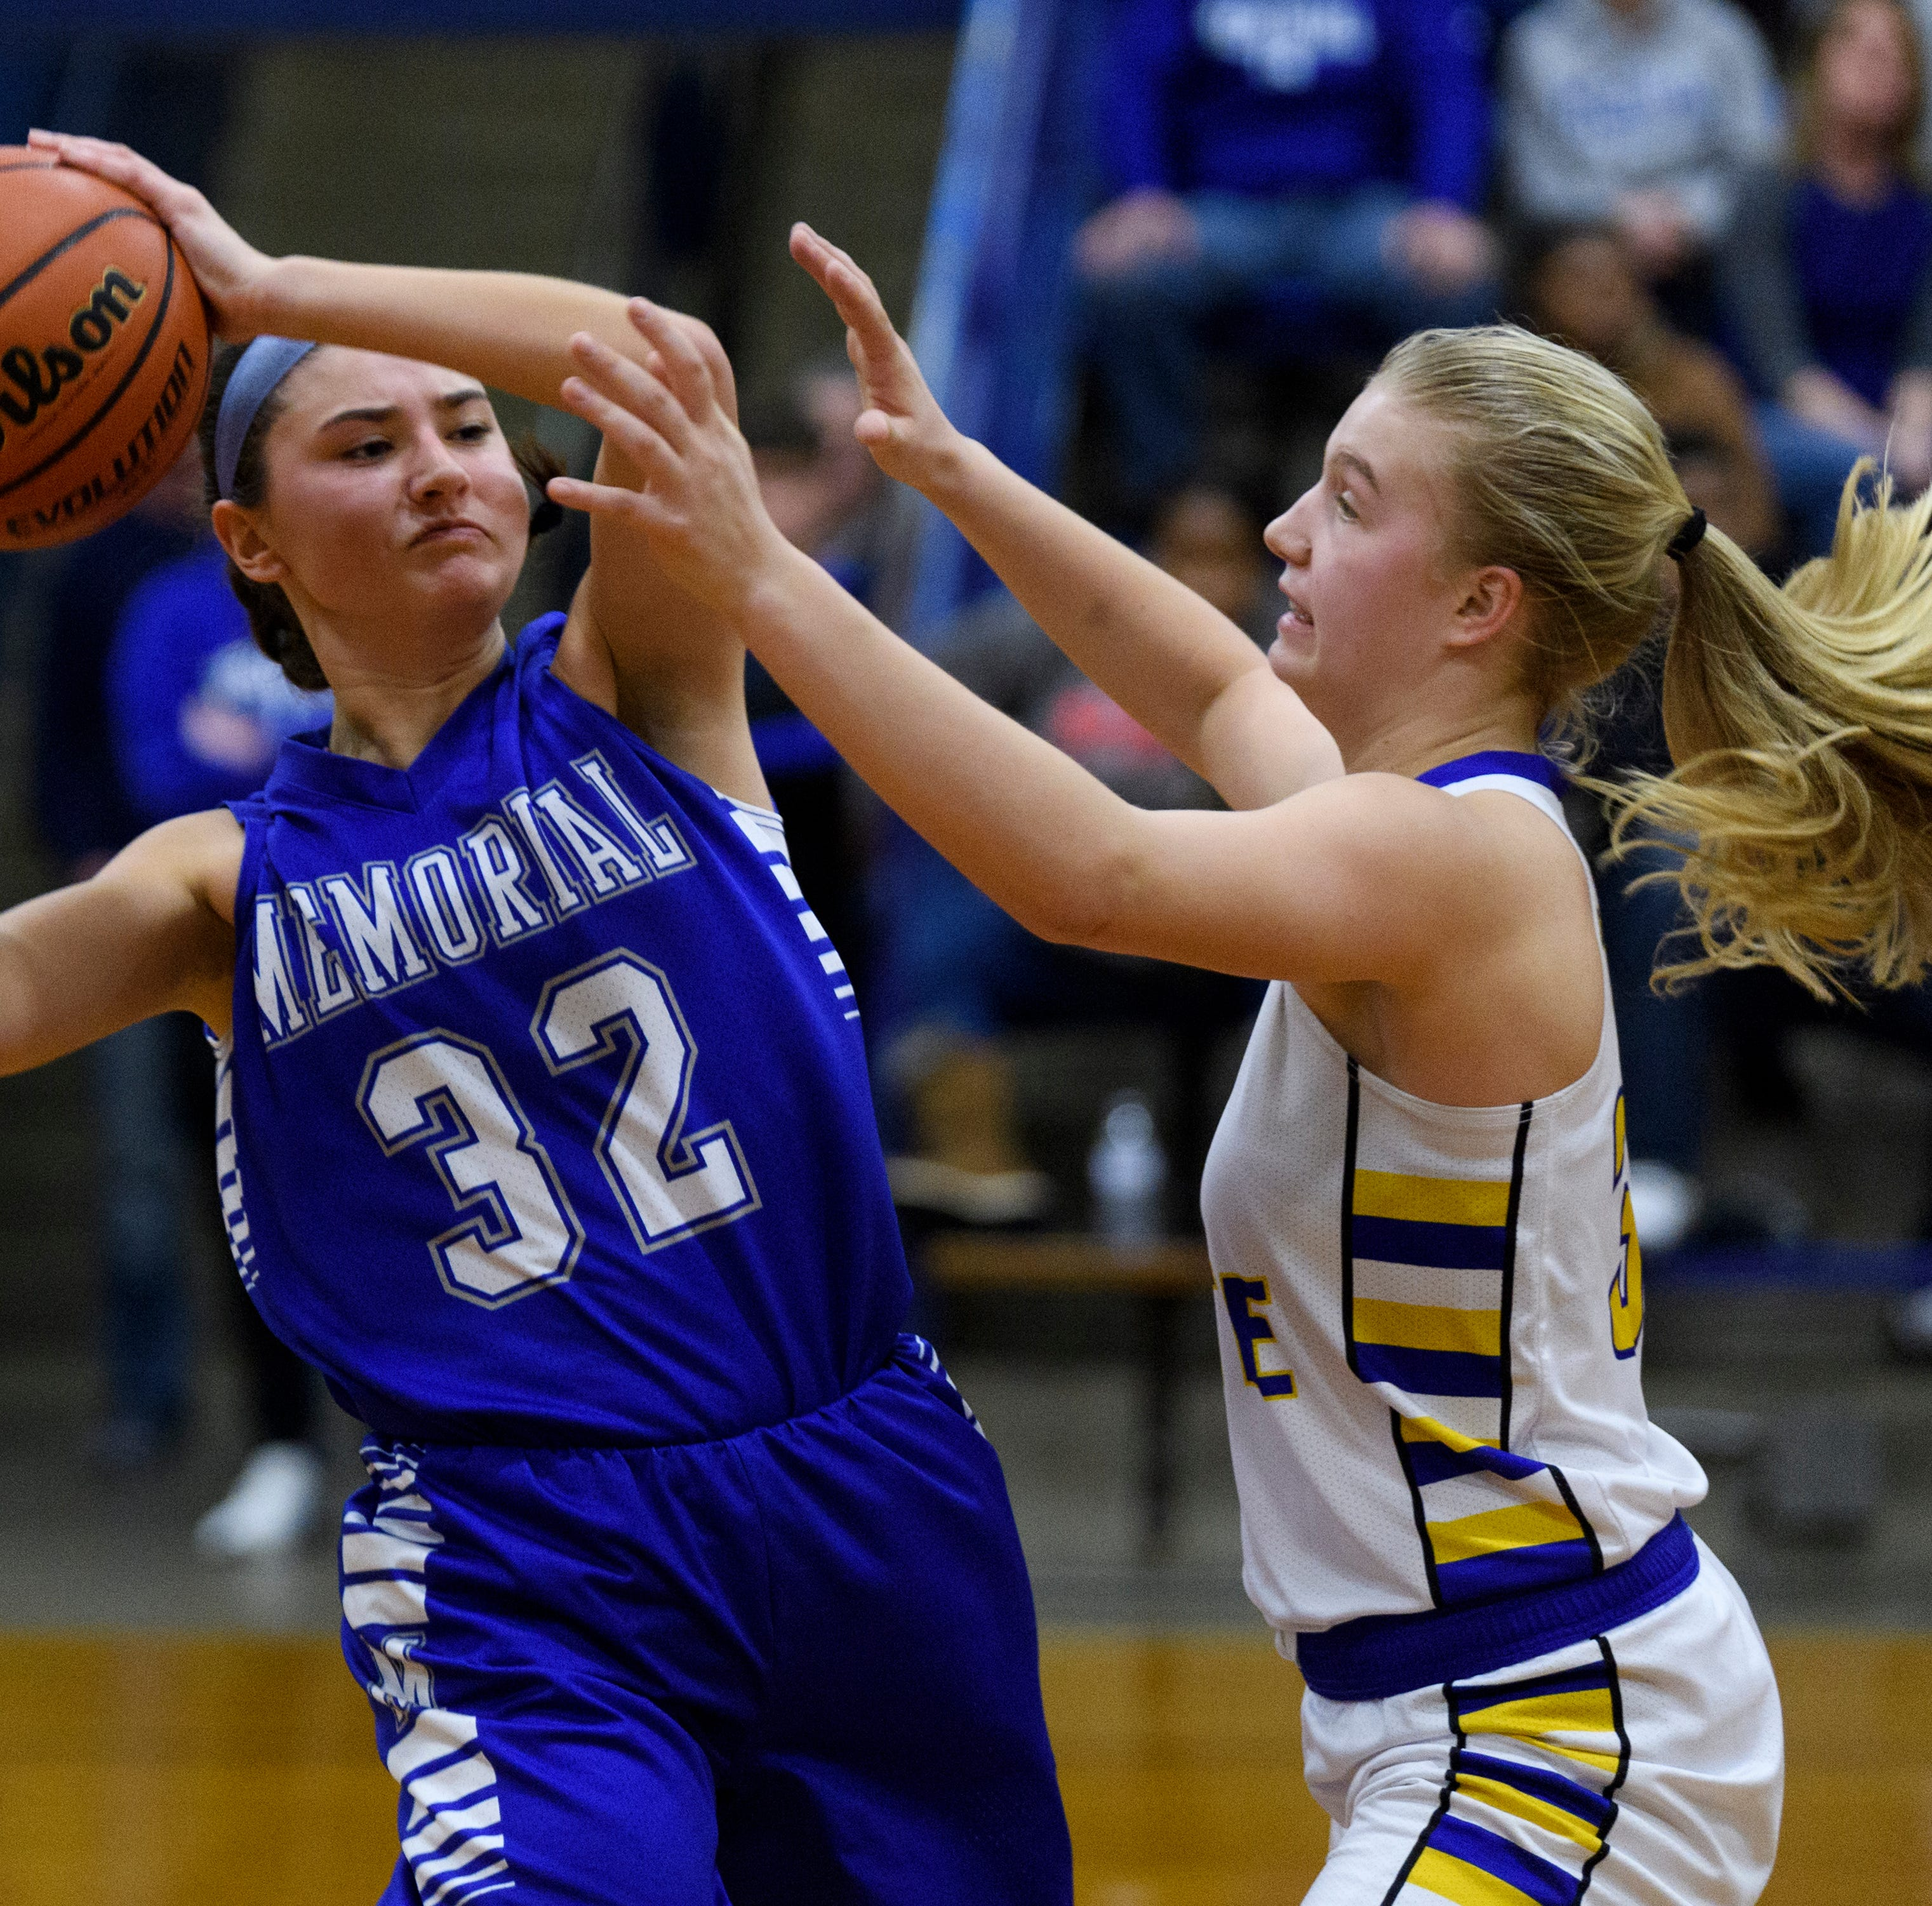 Evansville-area high school basketball scores for Jan. 15, 2019